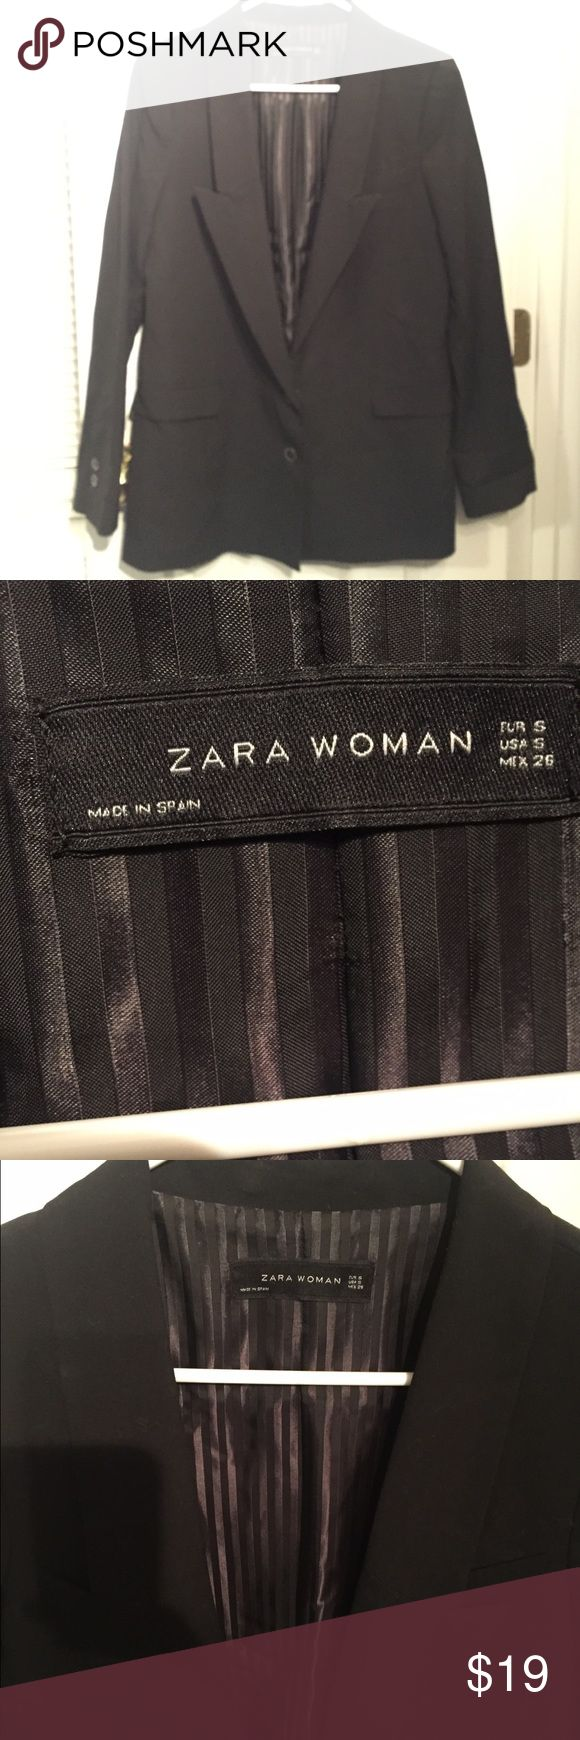 Zara Woman Suit Jacket Solid Black Zara Suite Jacket with inner pinstripe lining detail...may require dry cleaning Zara Jackets & Coats Blazers